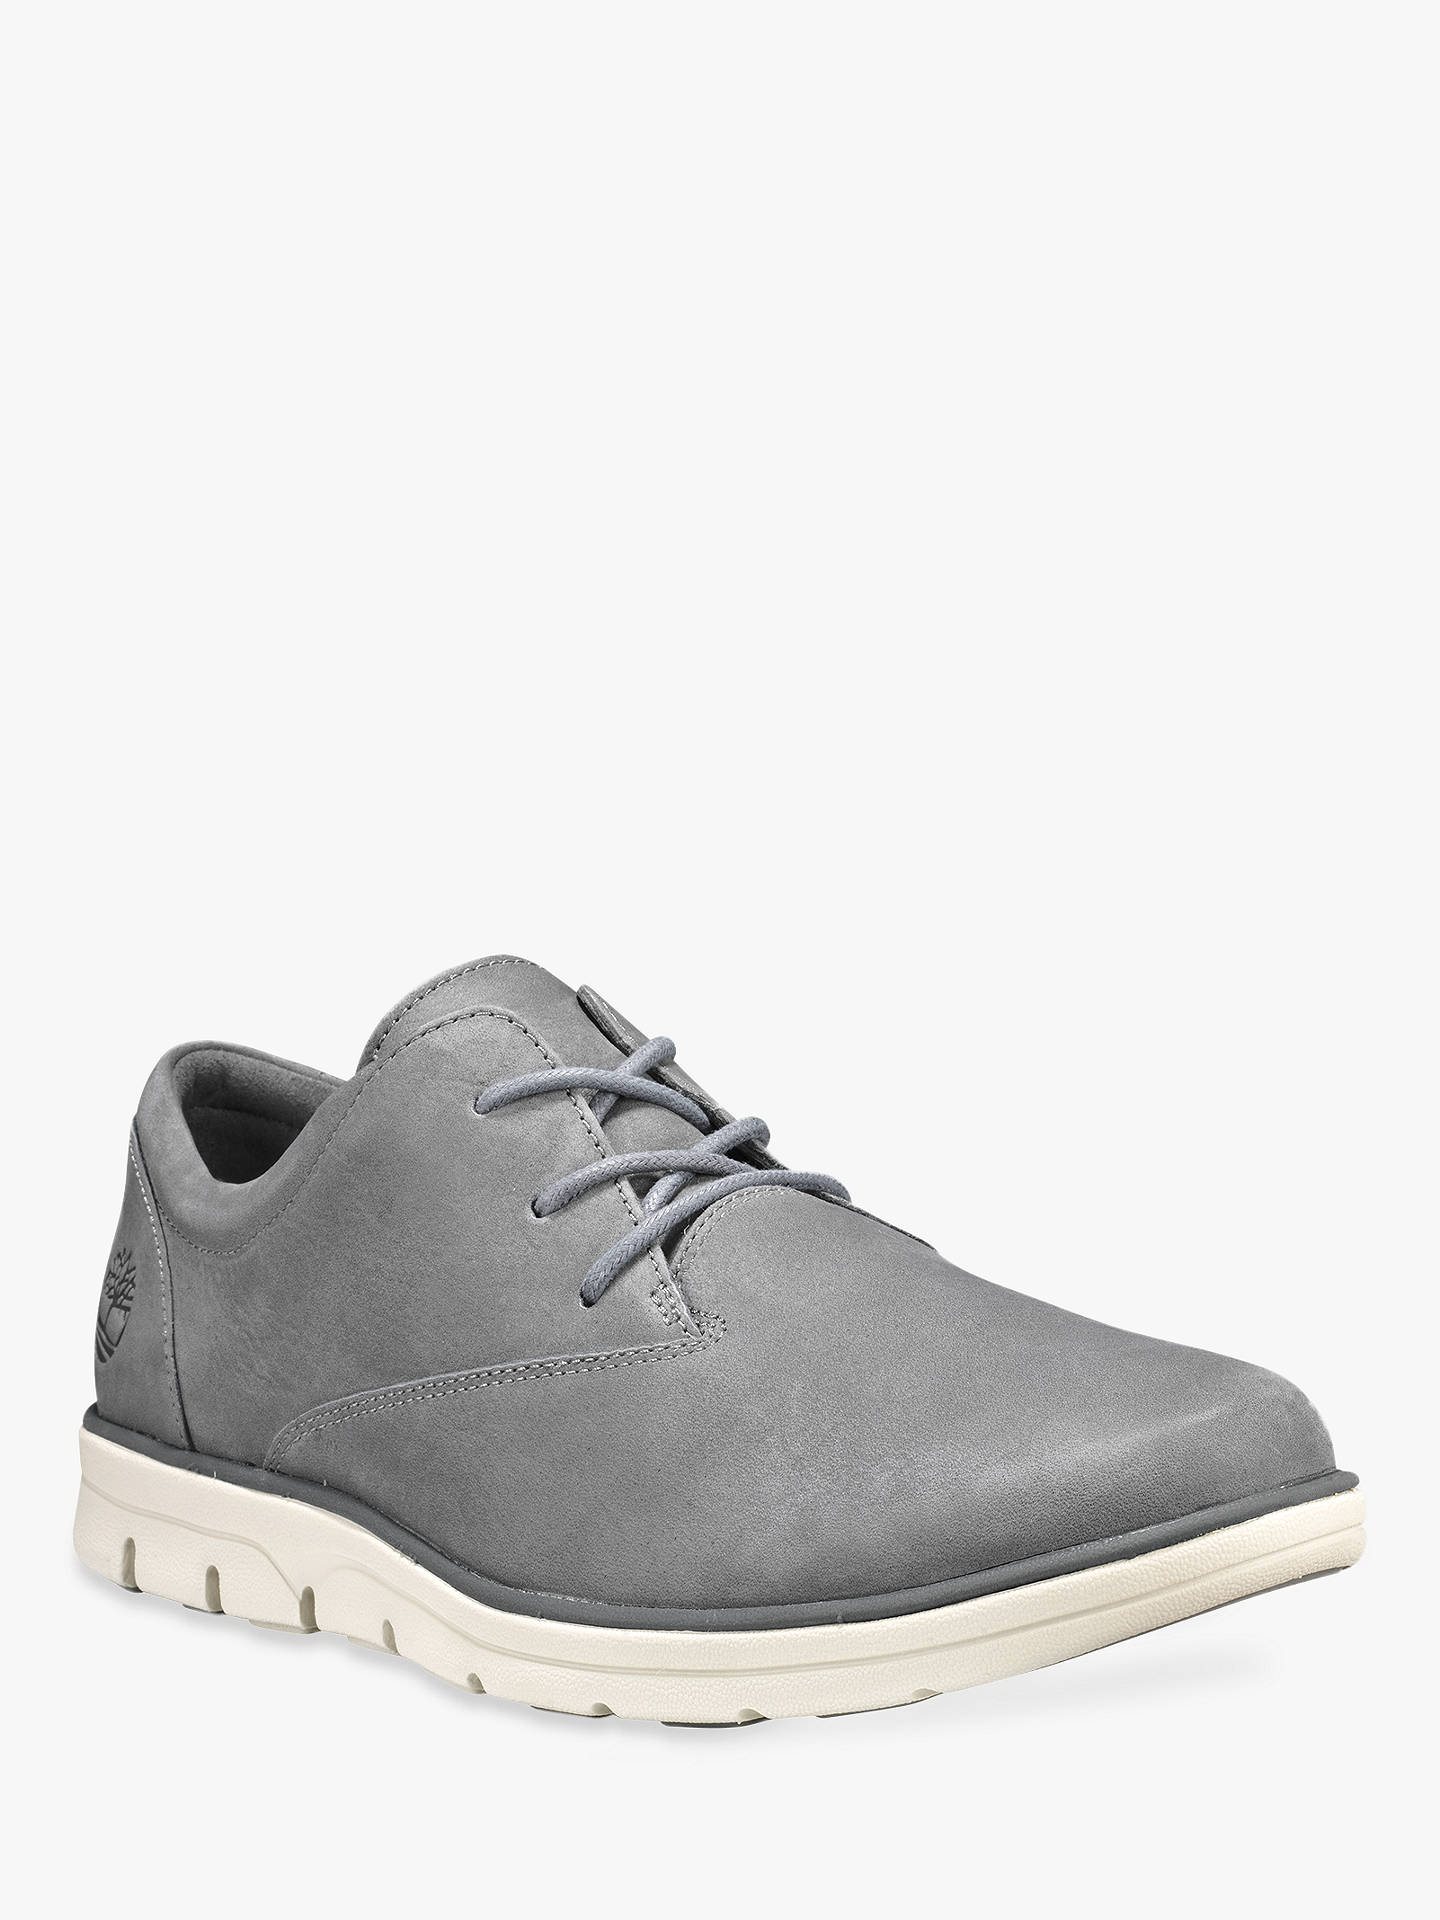 b56090e7f06 Timberland Suede Oxford Shoes at John Lewis & Partners